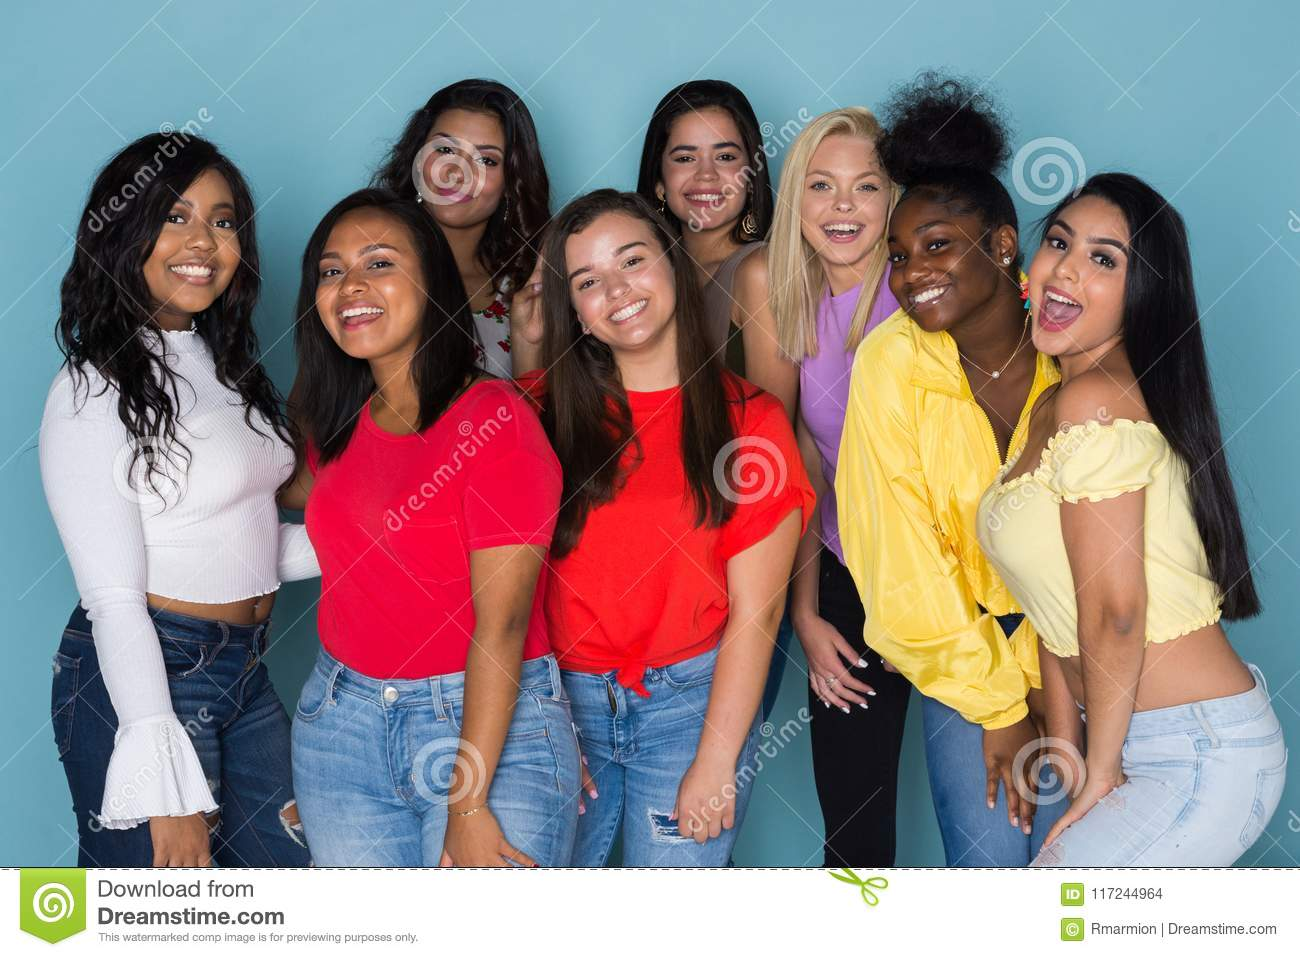 Different social groups for teens